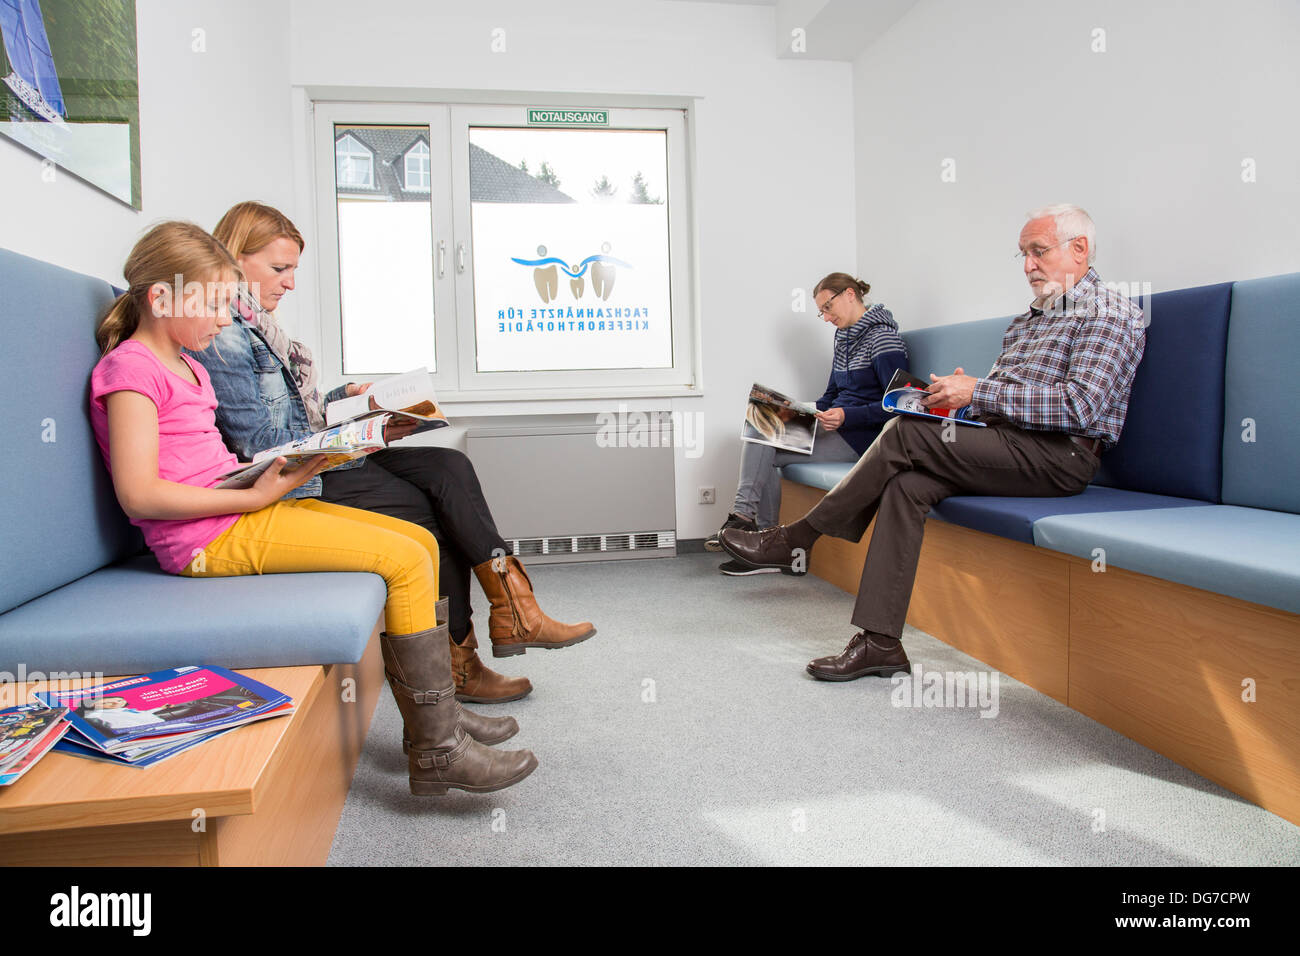 Dental Practice Patients In The Waiting Room Stock Photo